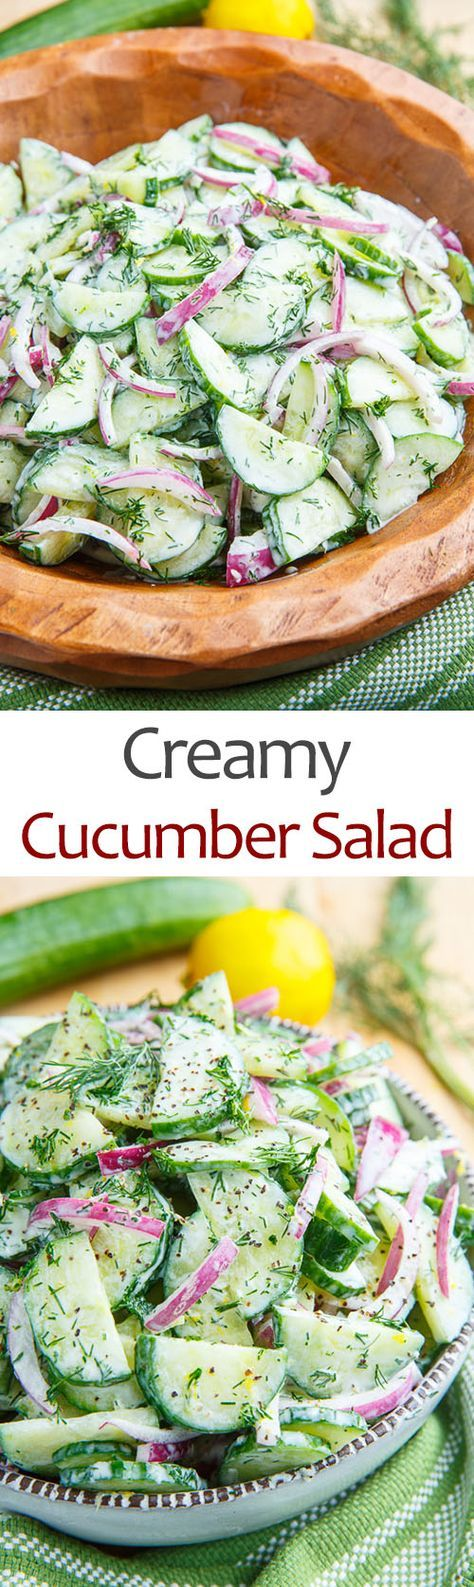 Creamy Cucumber Salad on Pinterest | Creamy Cucumbers, Cucumber Salad ...